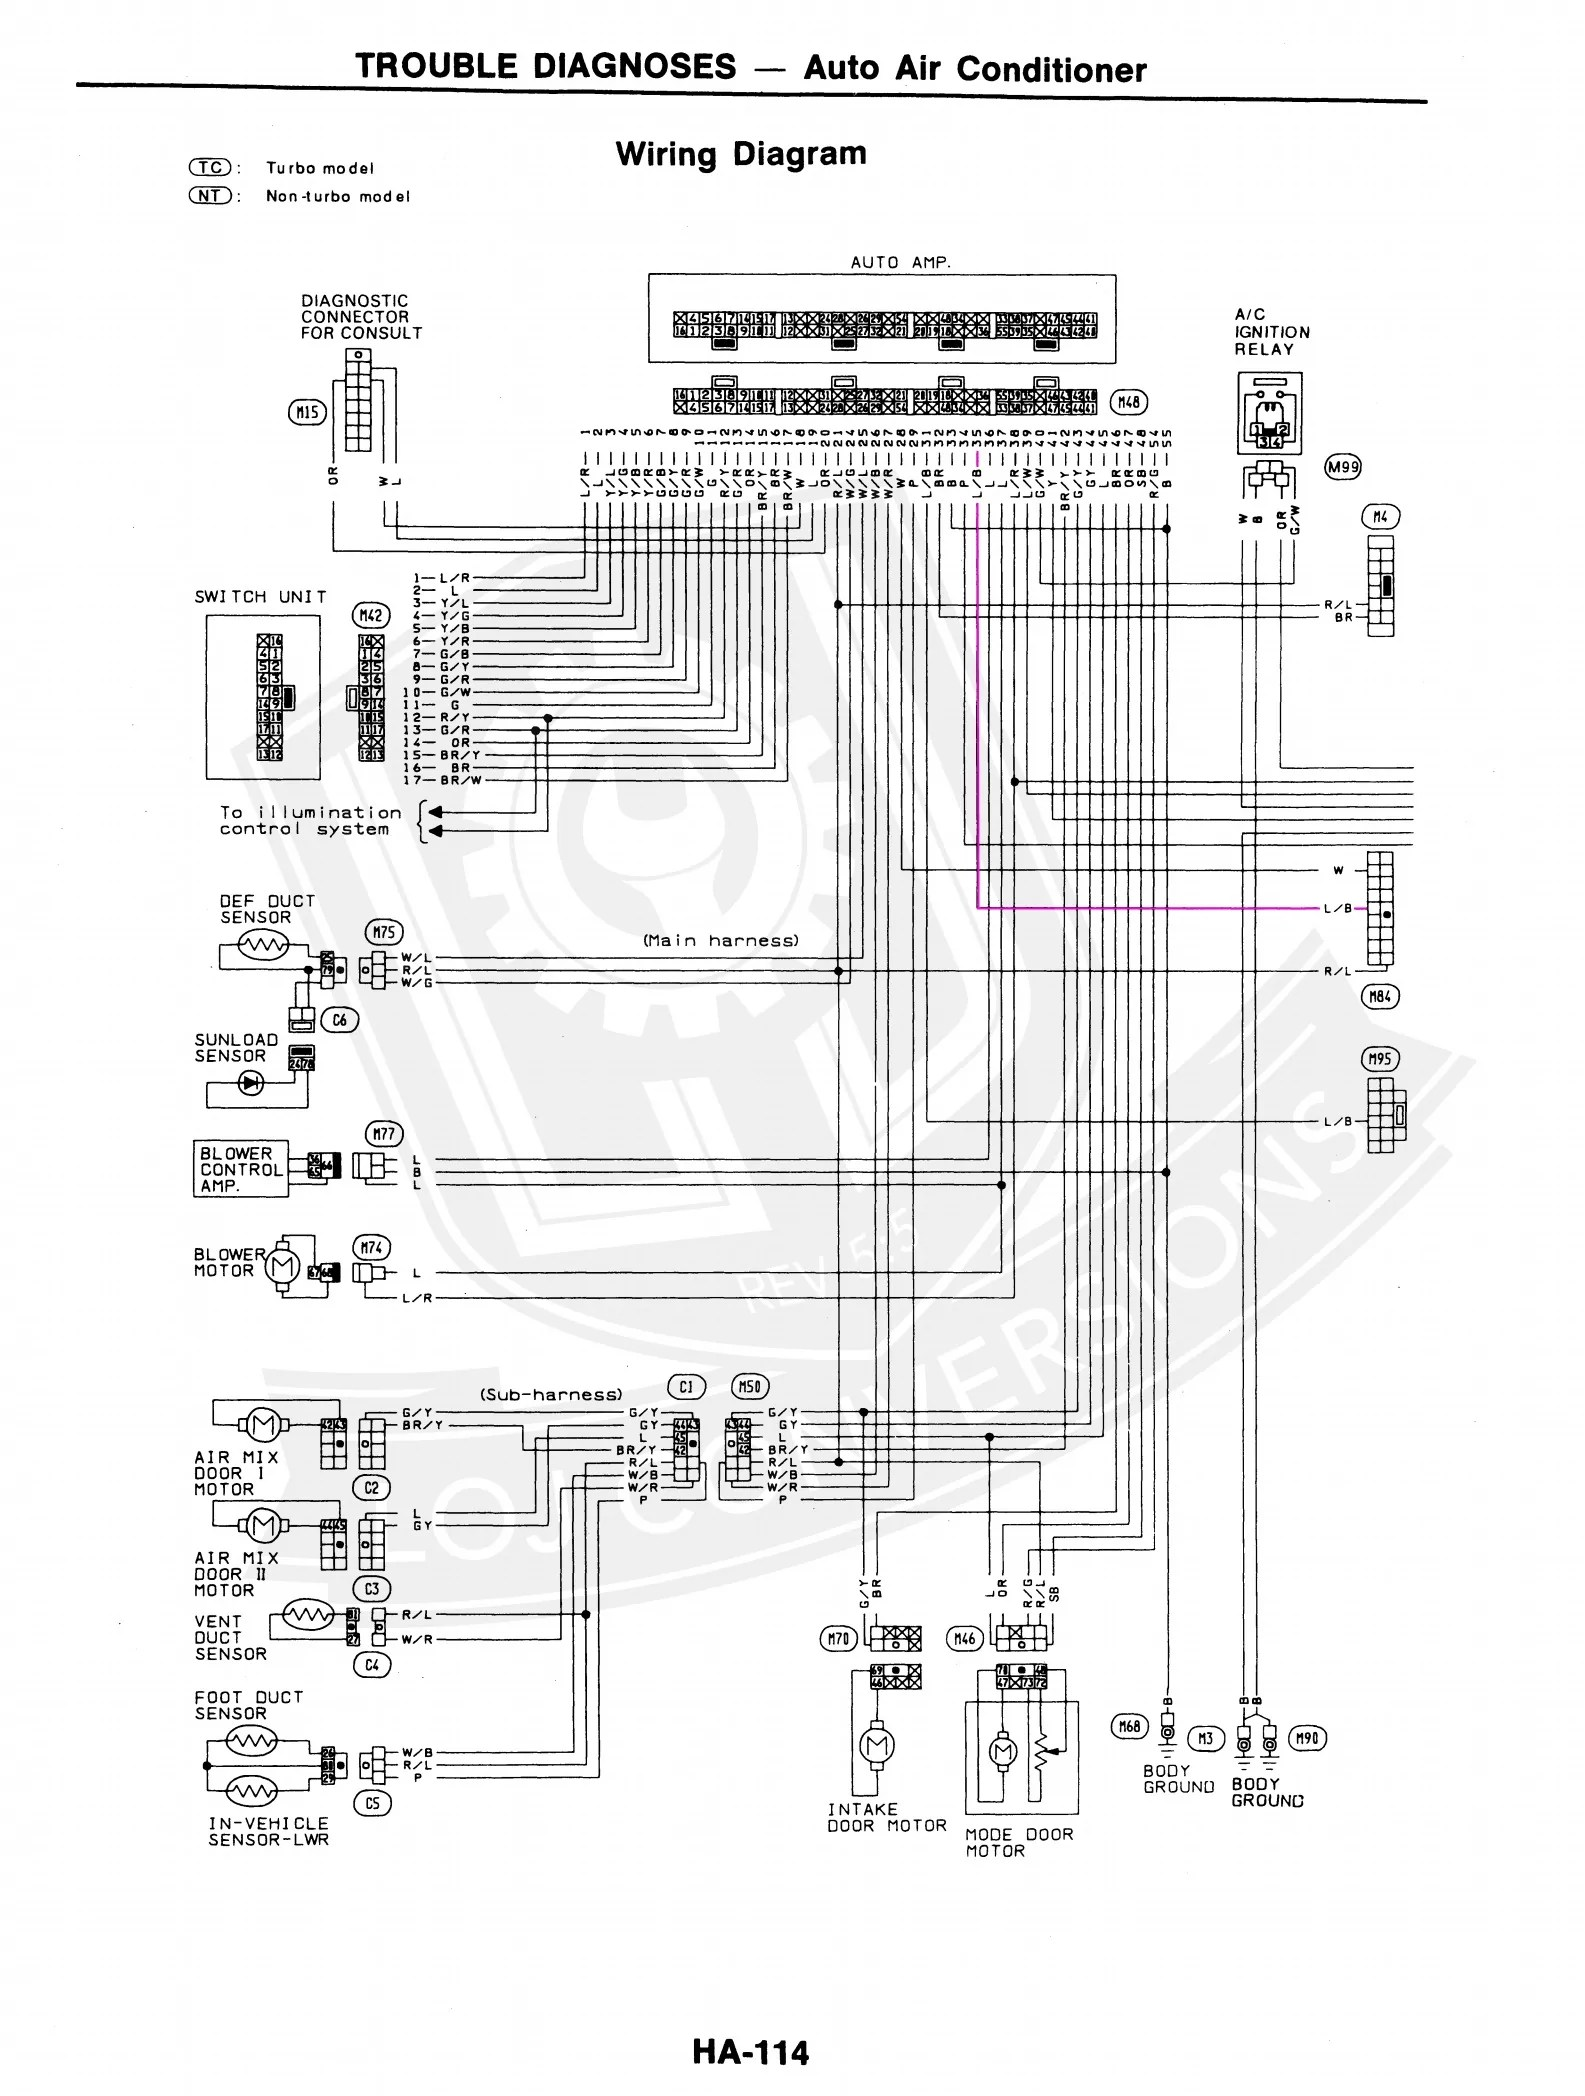 wiring the ac in a 300zx engine conversion loj conversions 1987 nissan 300zx engine diagram 1992 300zx engine wiring diagram [ 1585 x 2096 Pixel ]